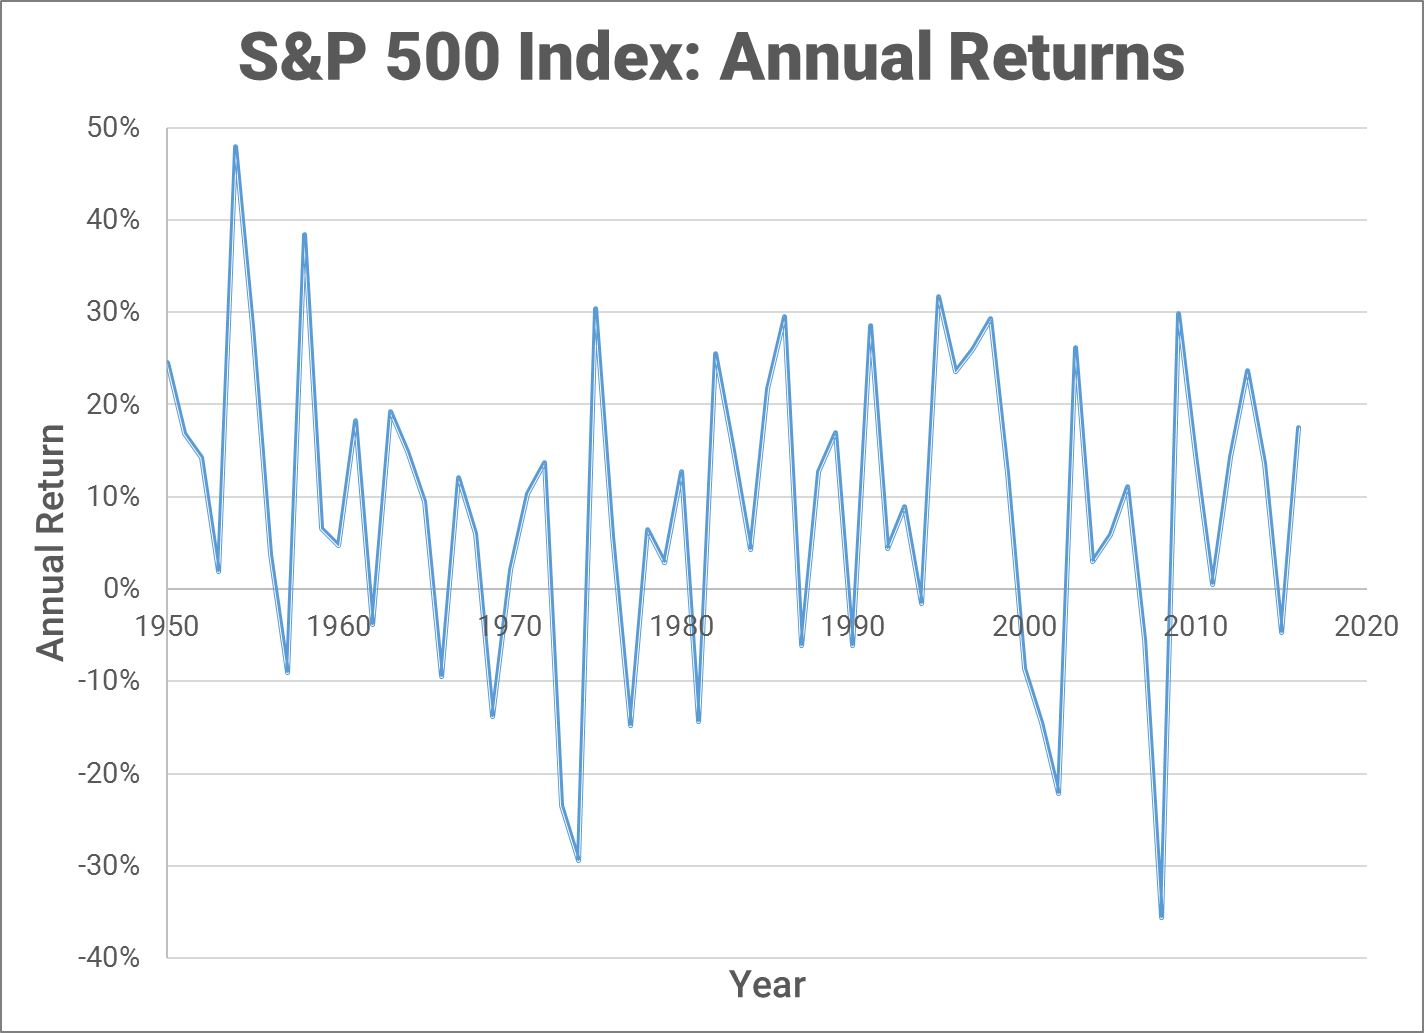 S&P 500 annual returns